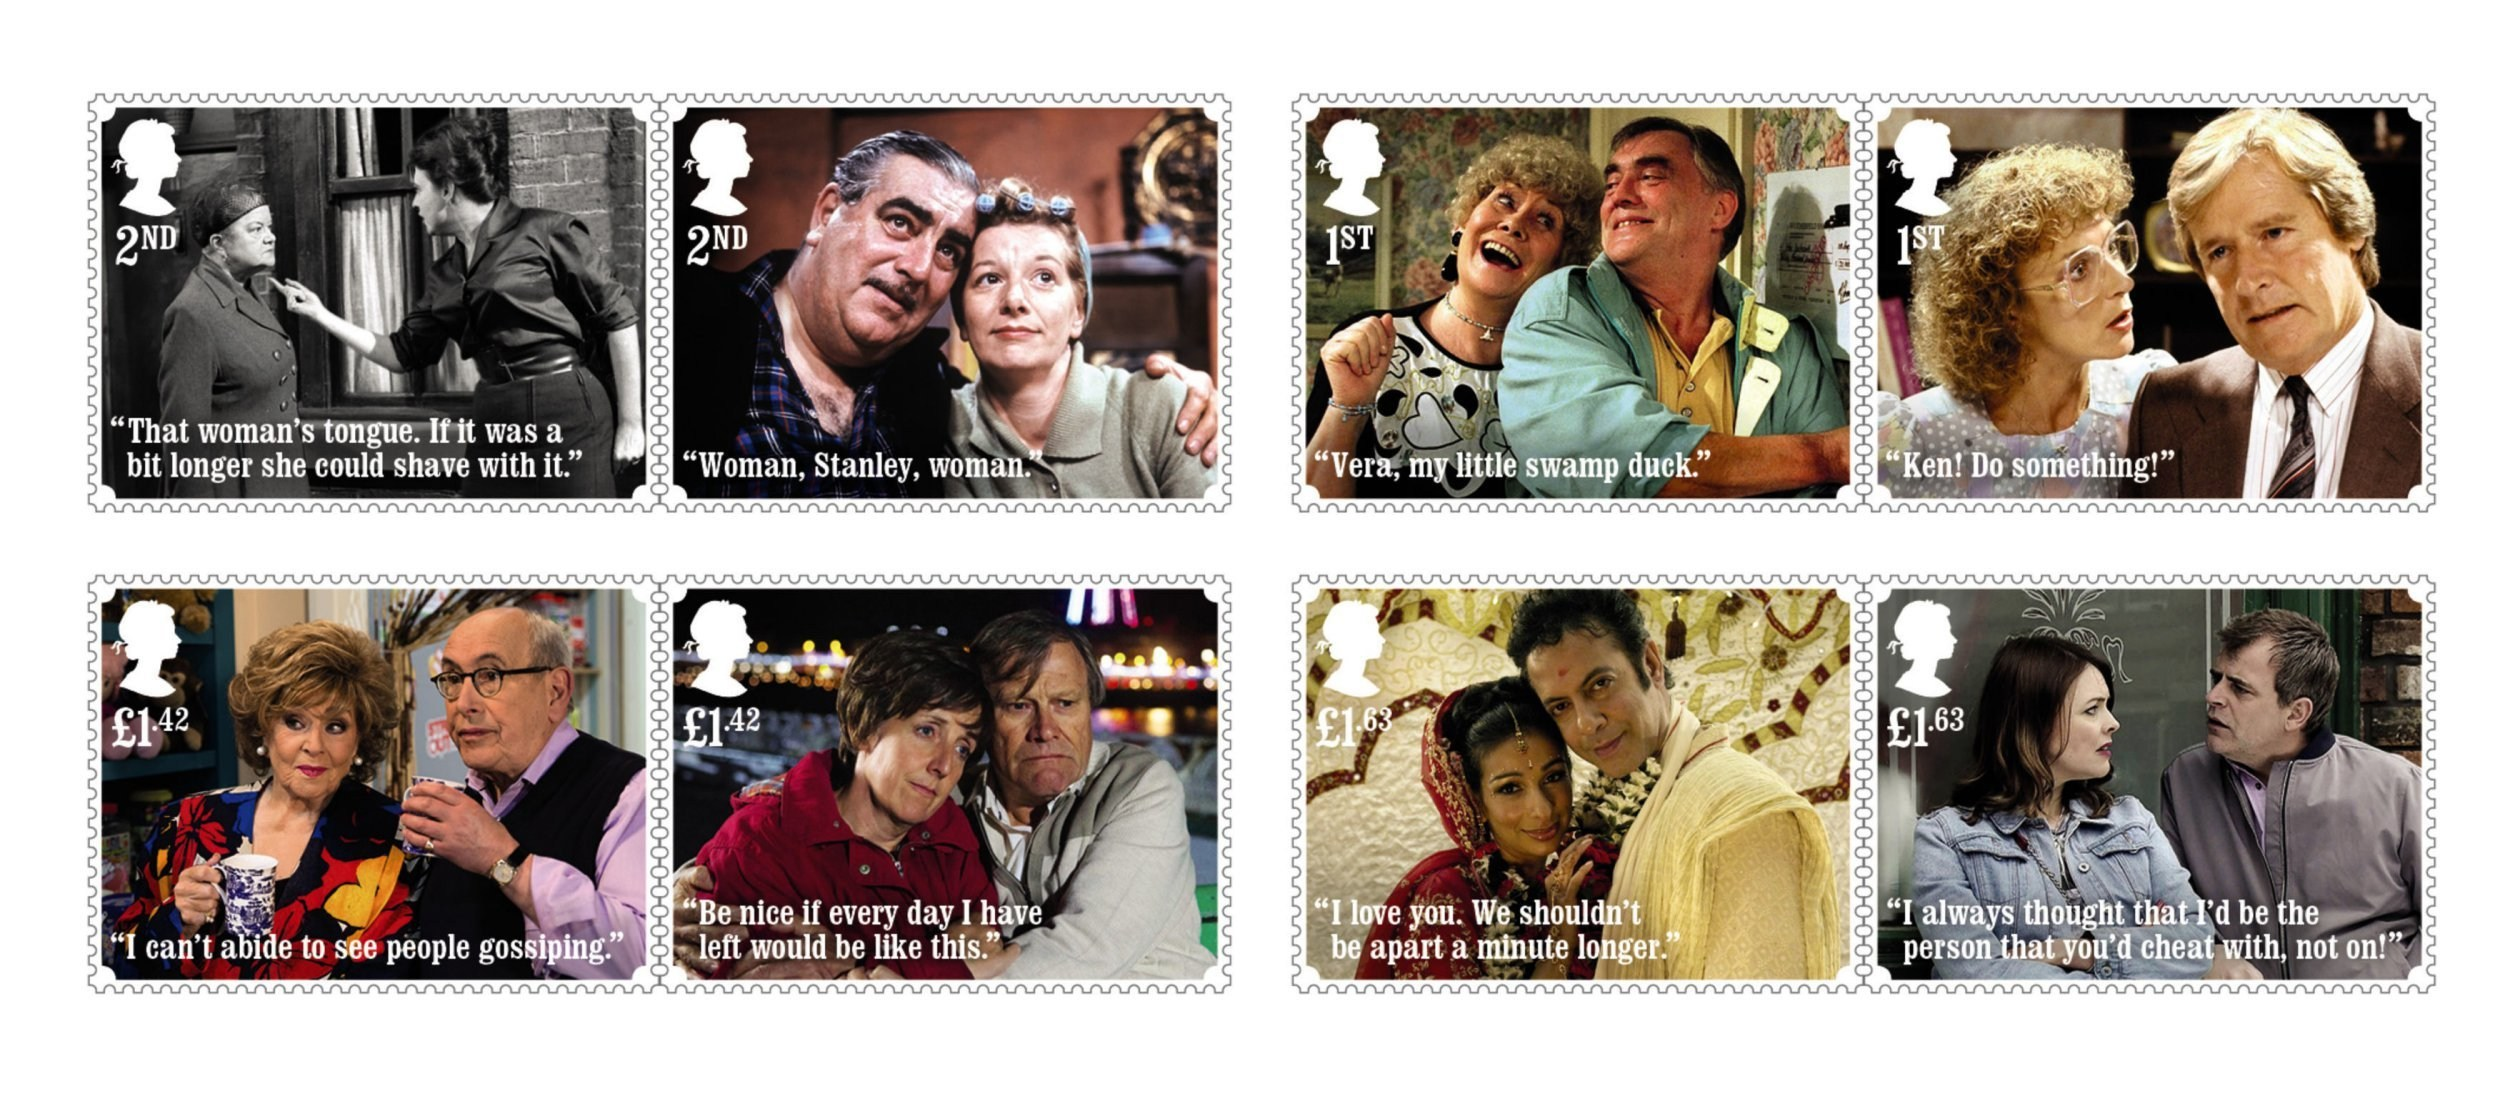 Coronation Street stamps unveiled to mark iconic soap's 60th anniversary